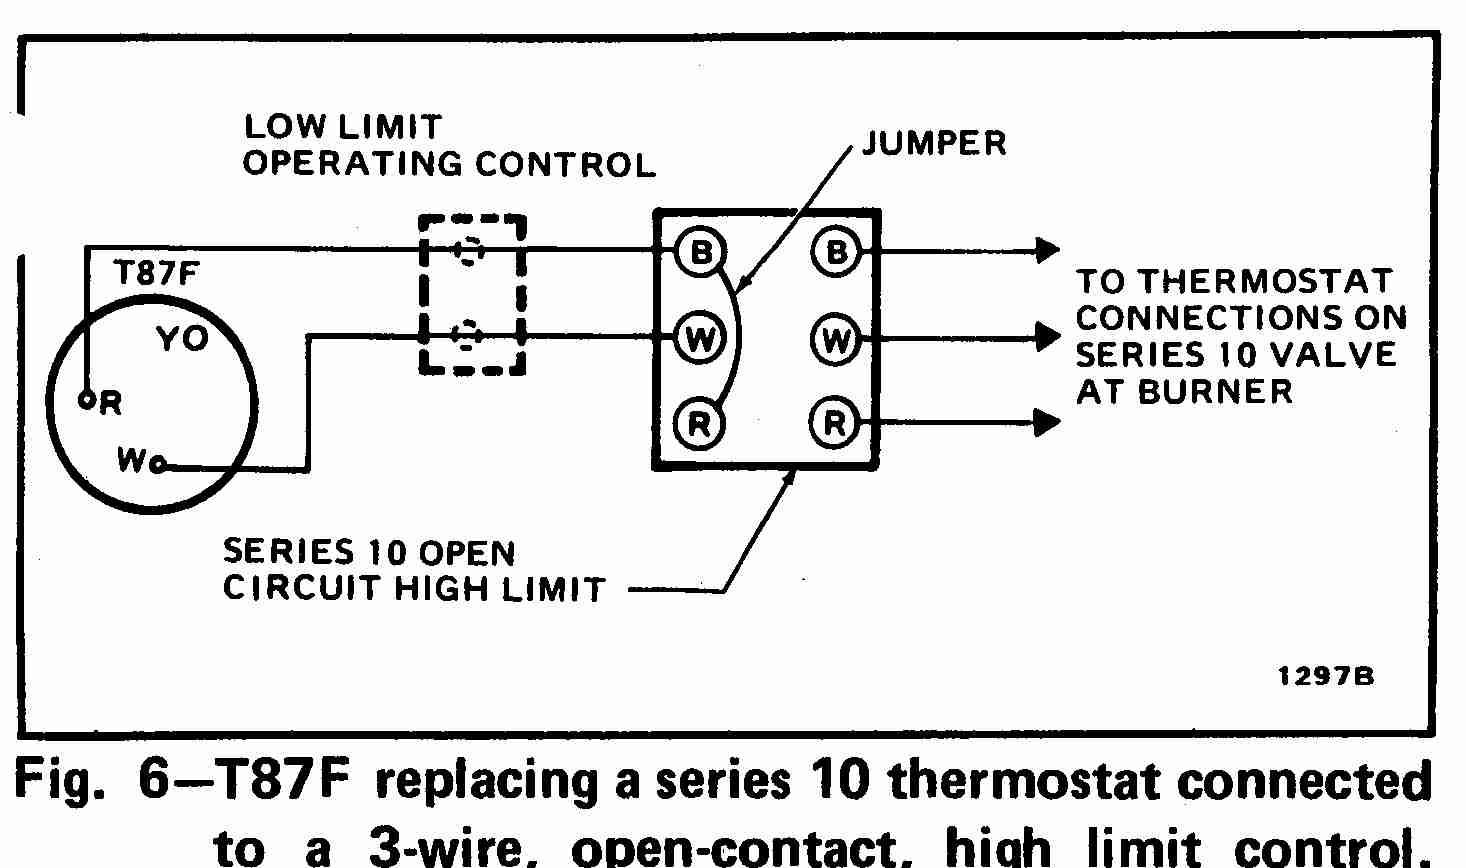 TT_T87F_0002_3WHL_DJF room thermostat wiring diagrams for hvac systems 2 wire thermostat diagram at bayanpartner.co